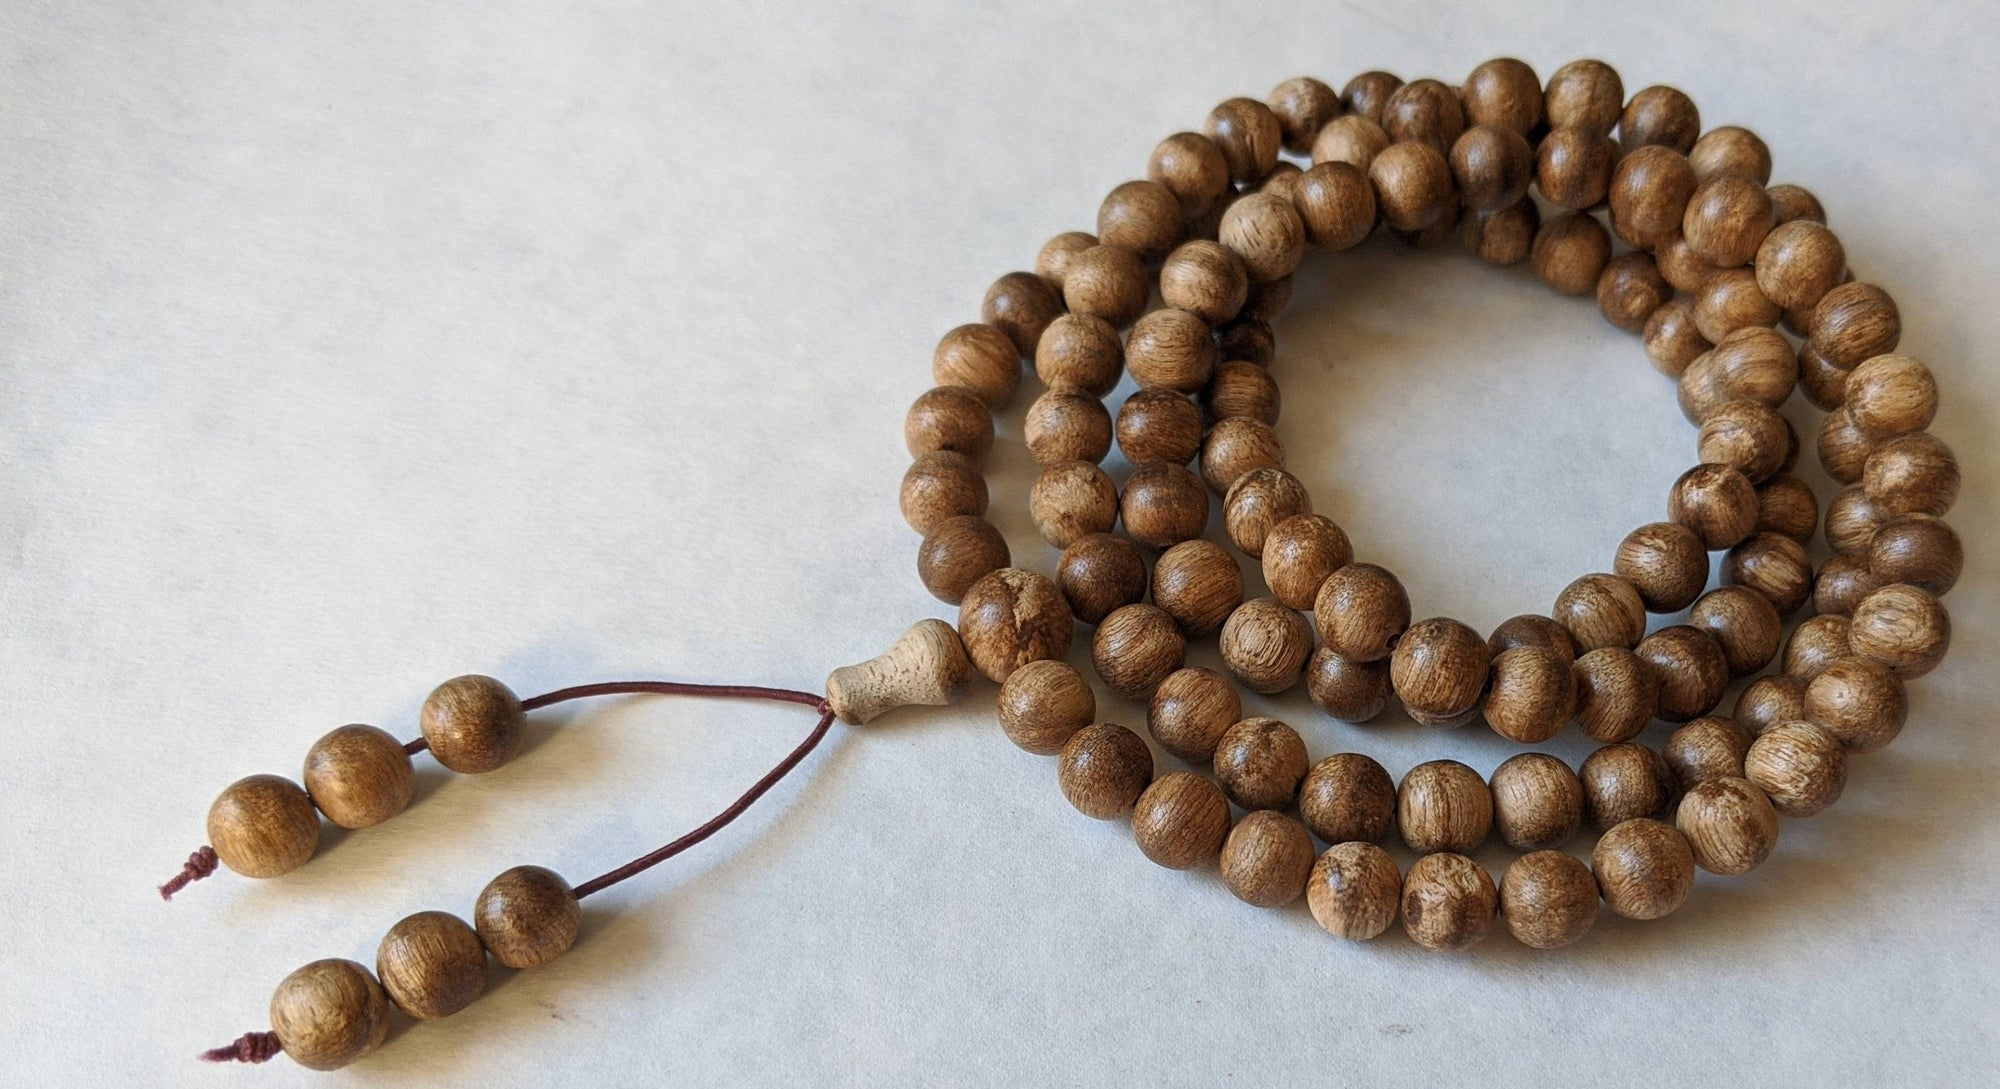 Mala beads *New* WAB Wild 108 Mala Agarwood Borneo region 8mm 19g